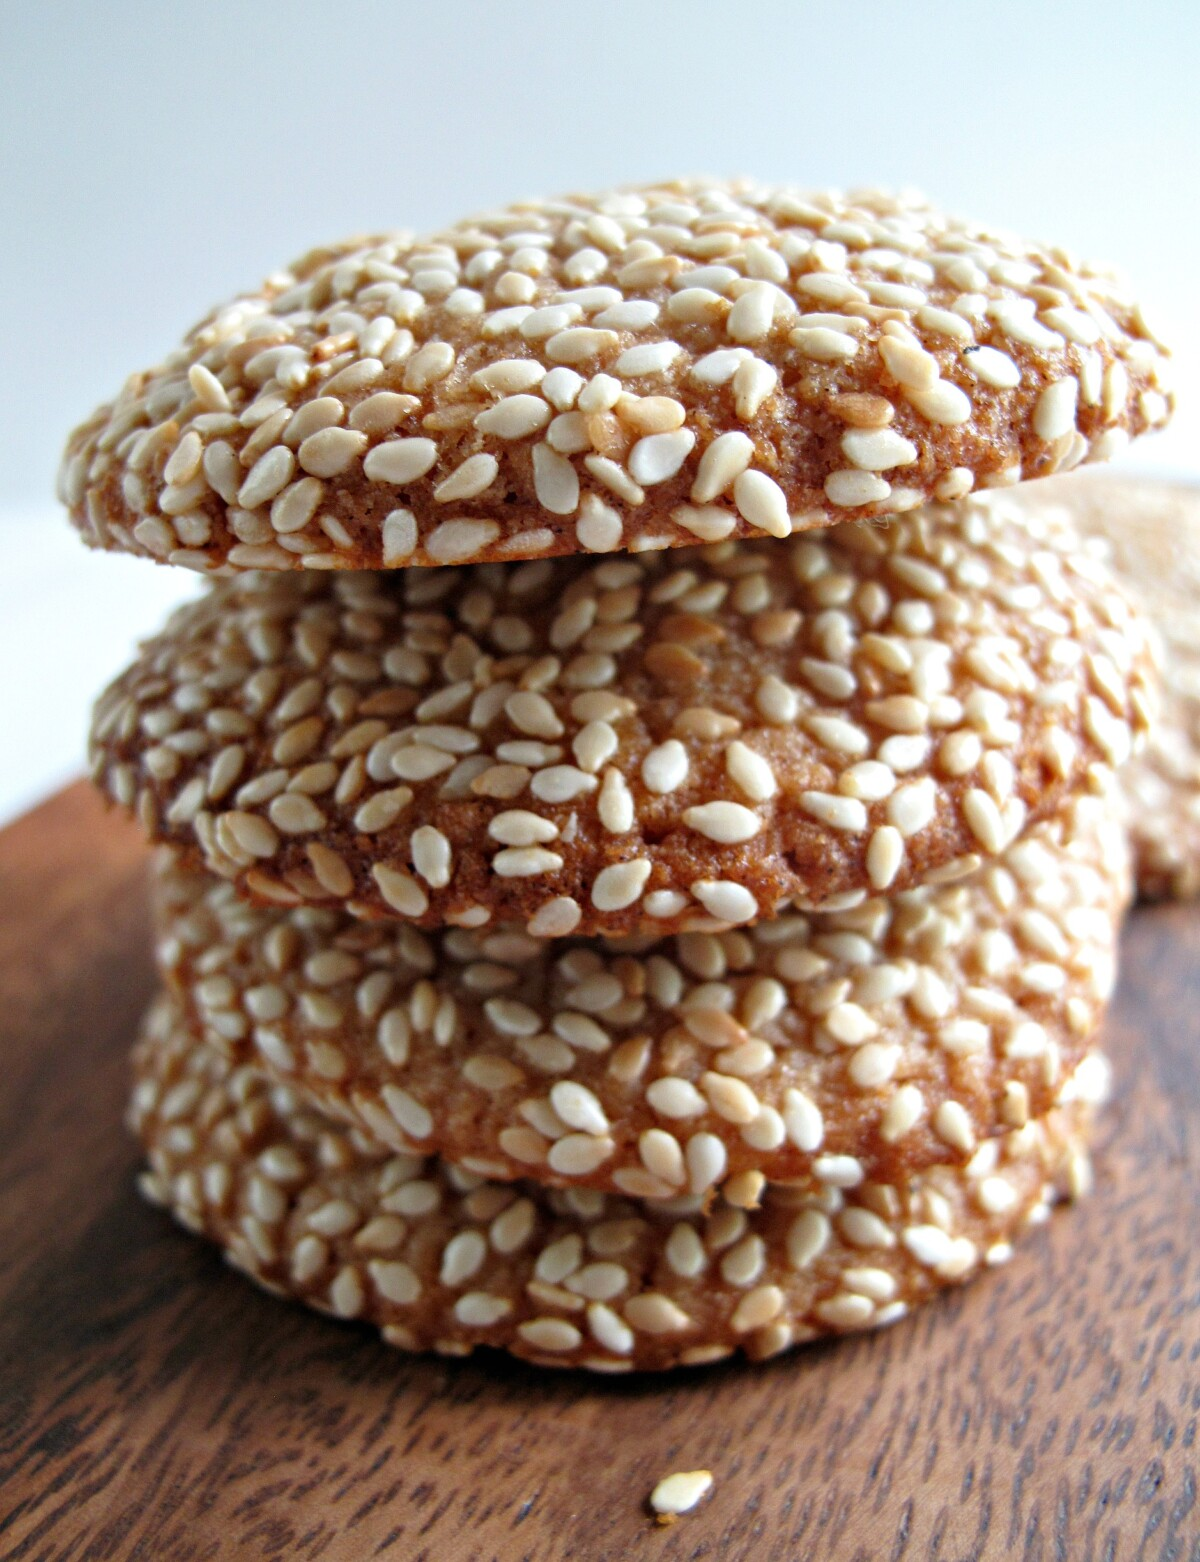 Stack of sesame coated cookies shown from the side.